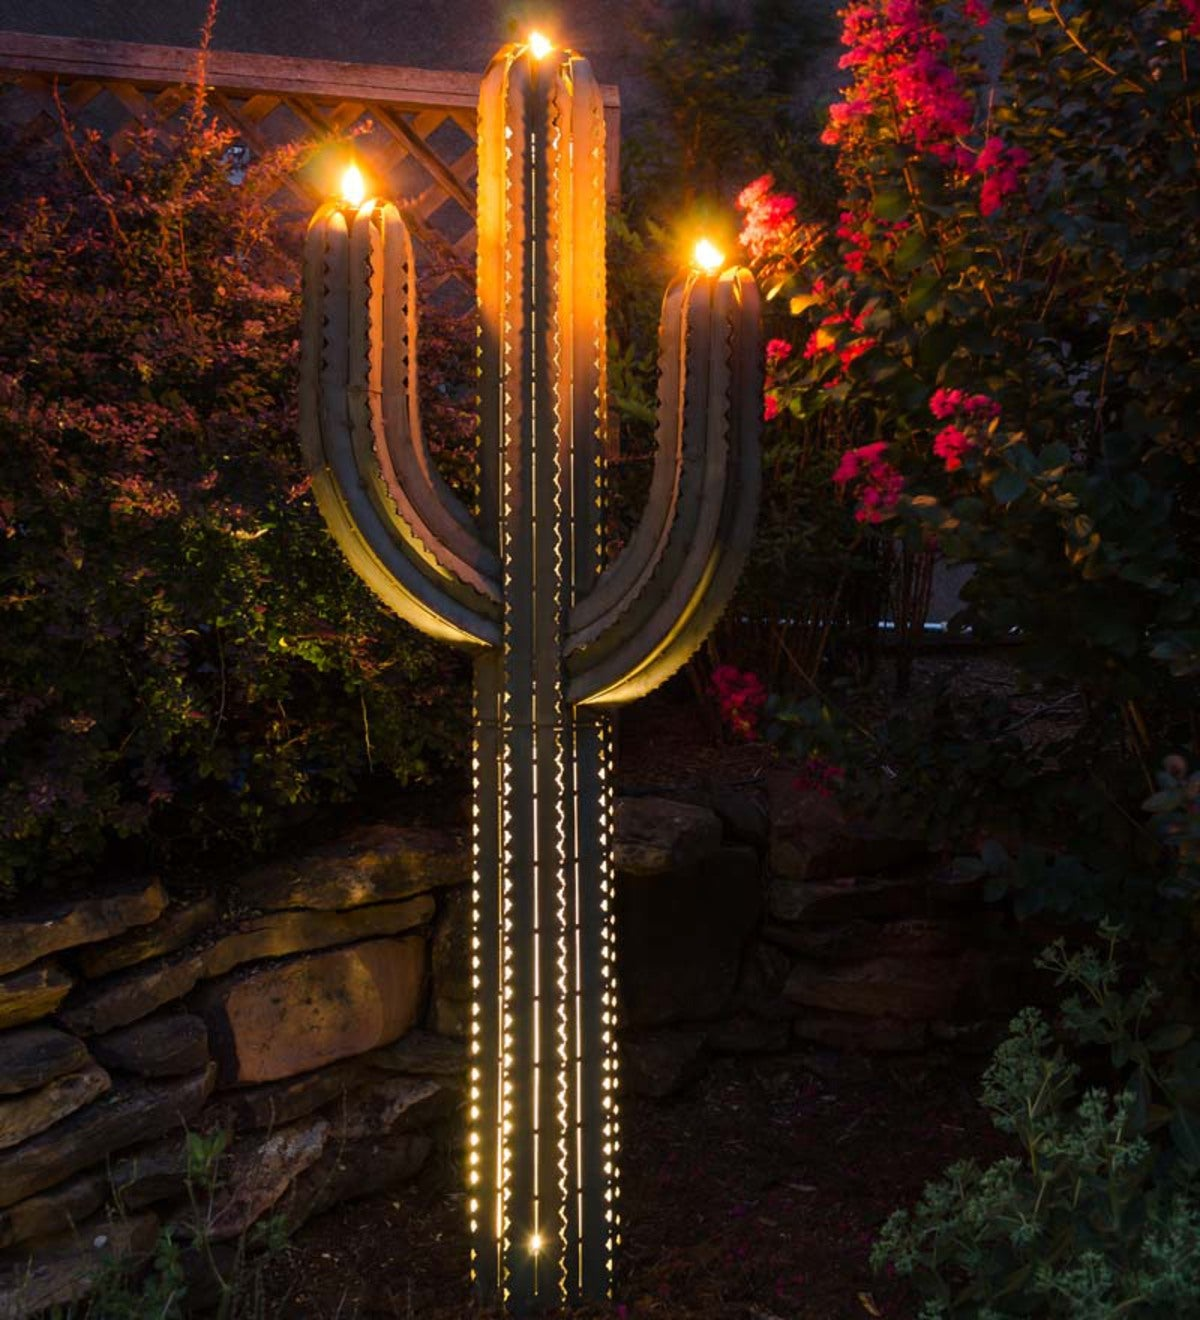 Green Metal Saguaro Cactus Outdoor Torch - 5 Foot